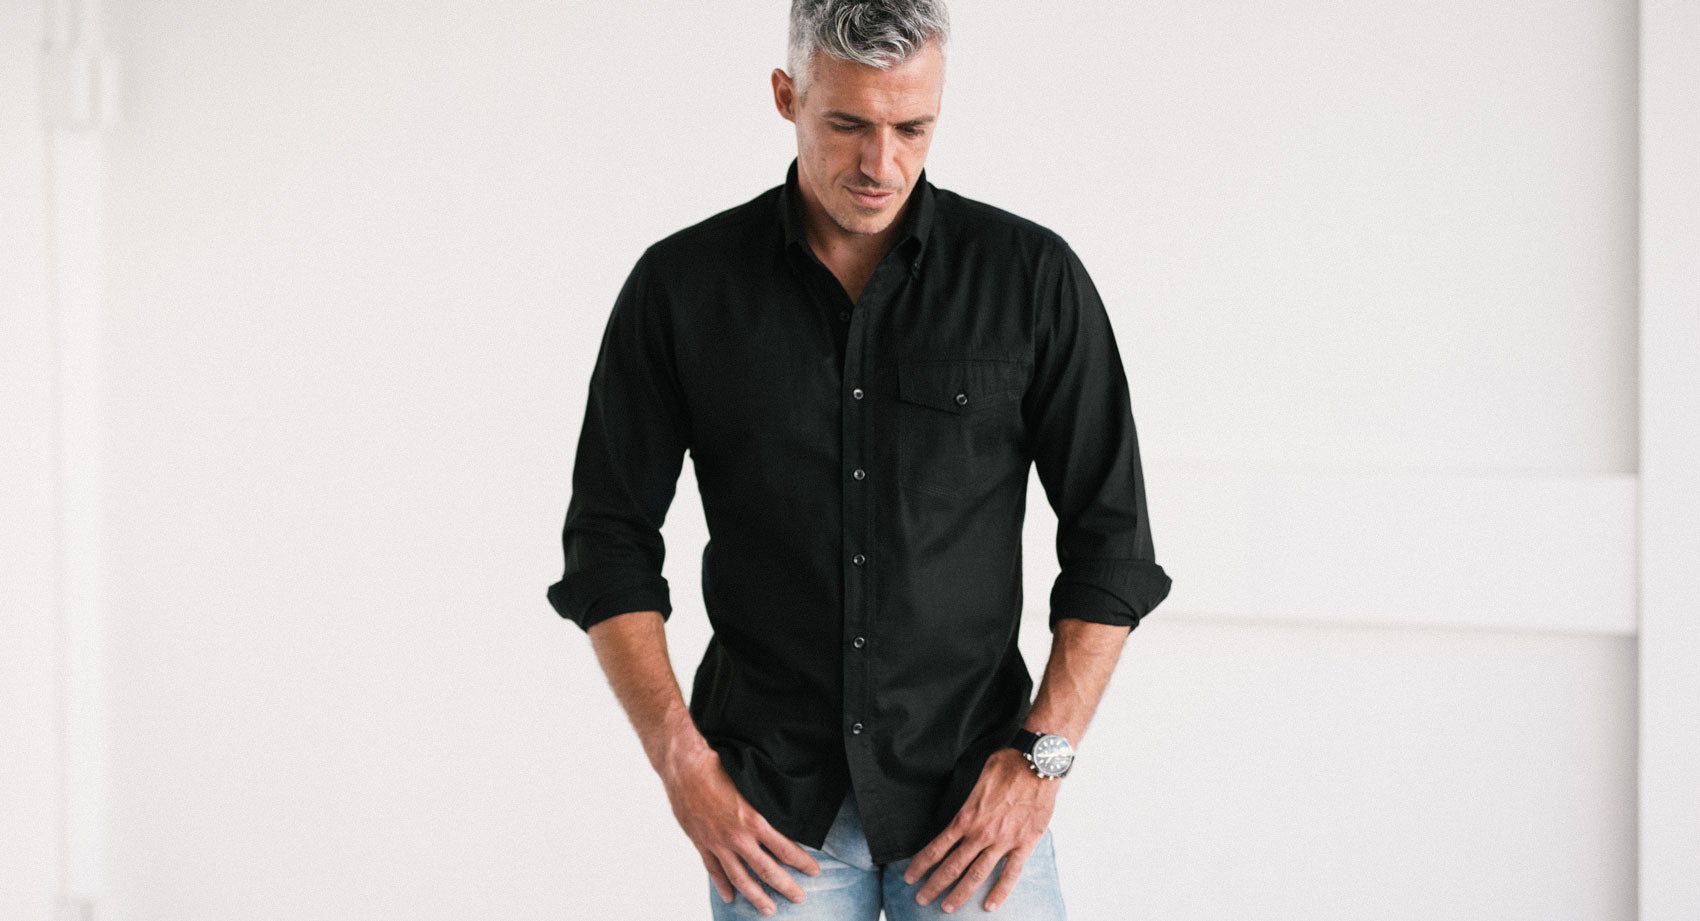 Black 1 Pocket Casual Men's Shirt Image